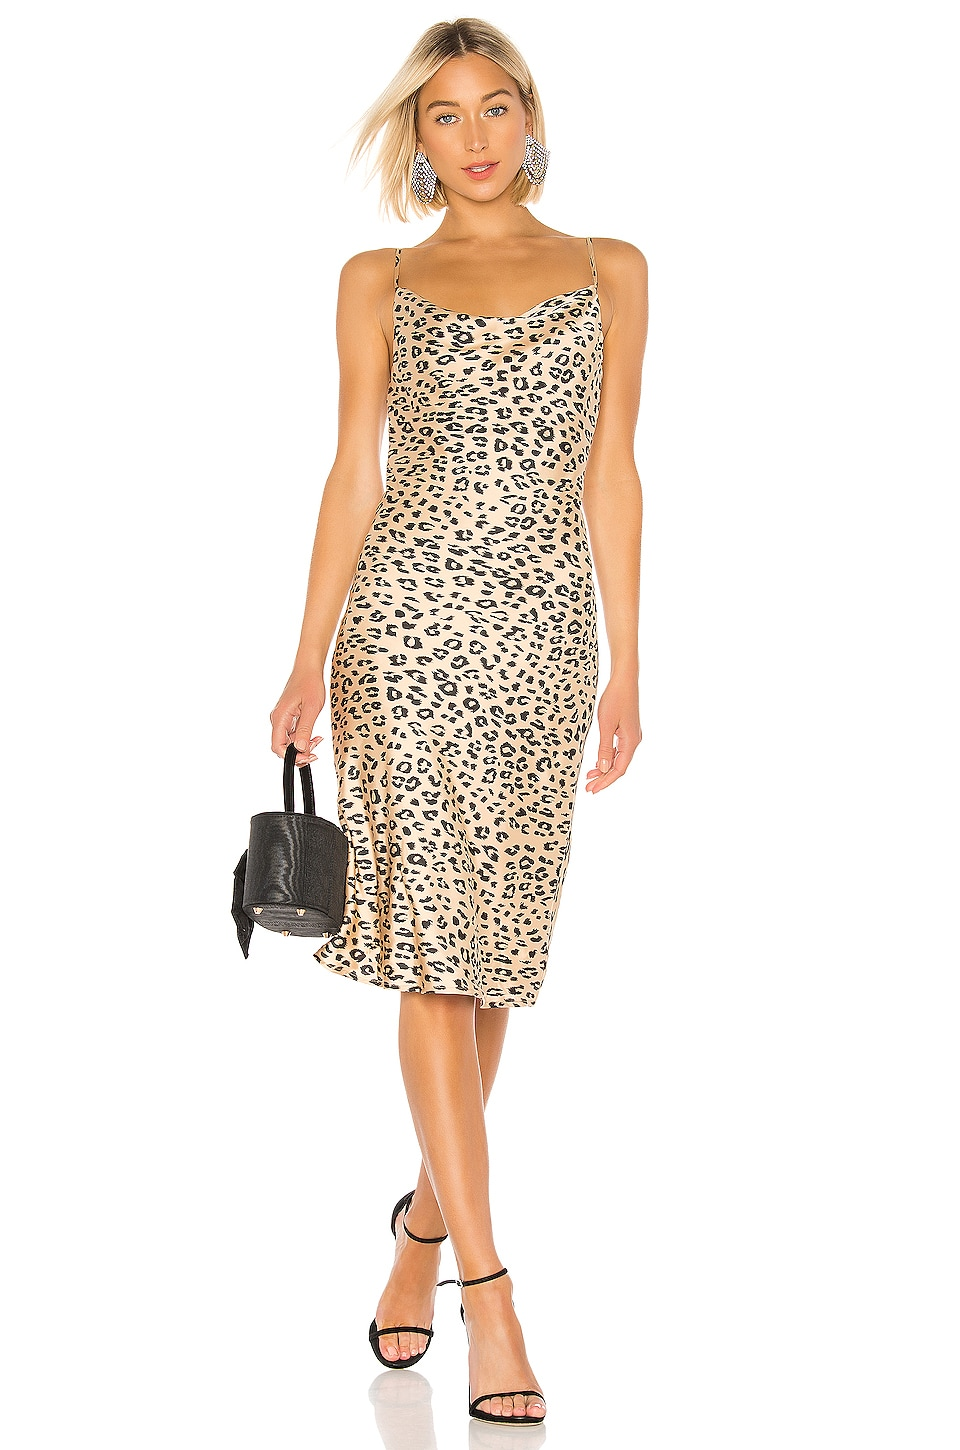 Bardot Leopard Slip Dress in Leopard